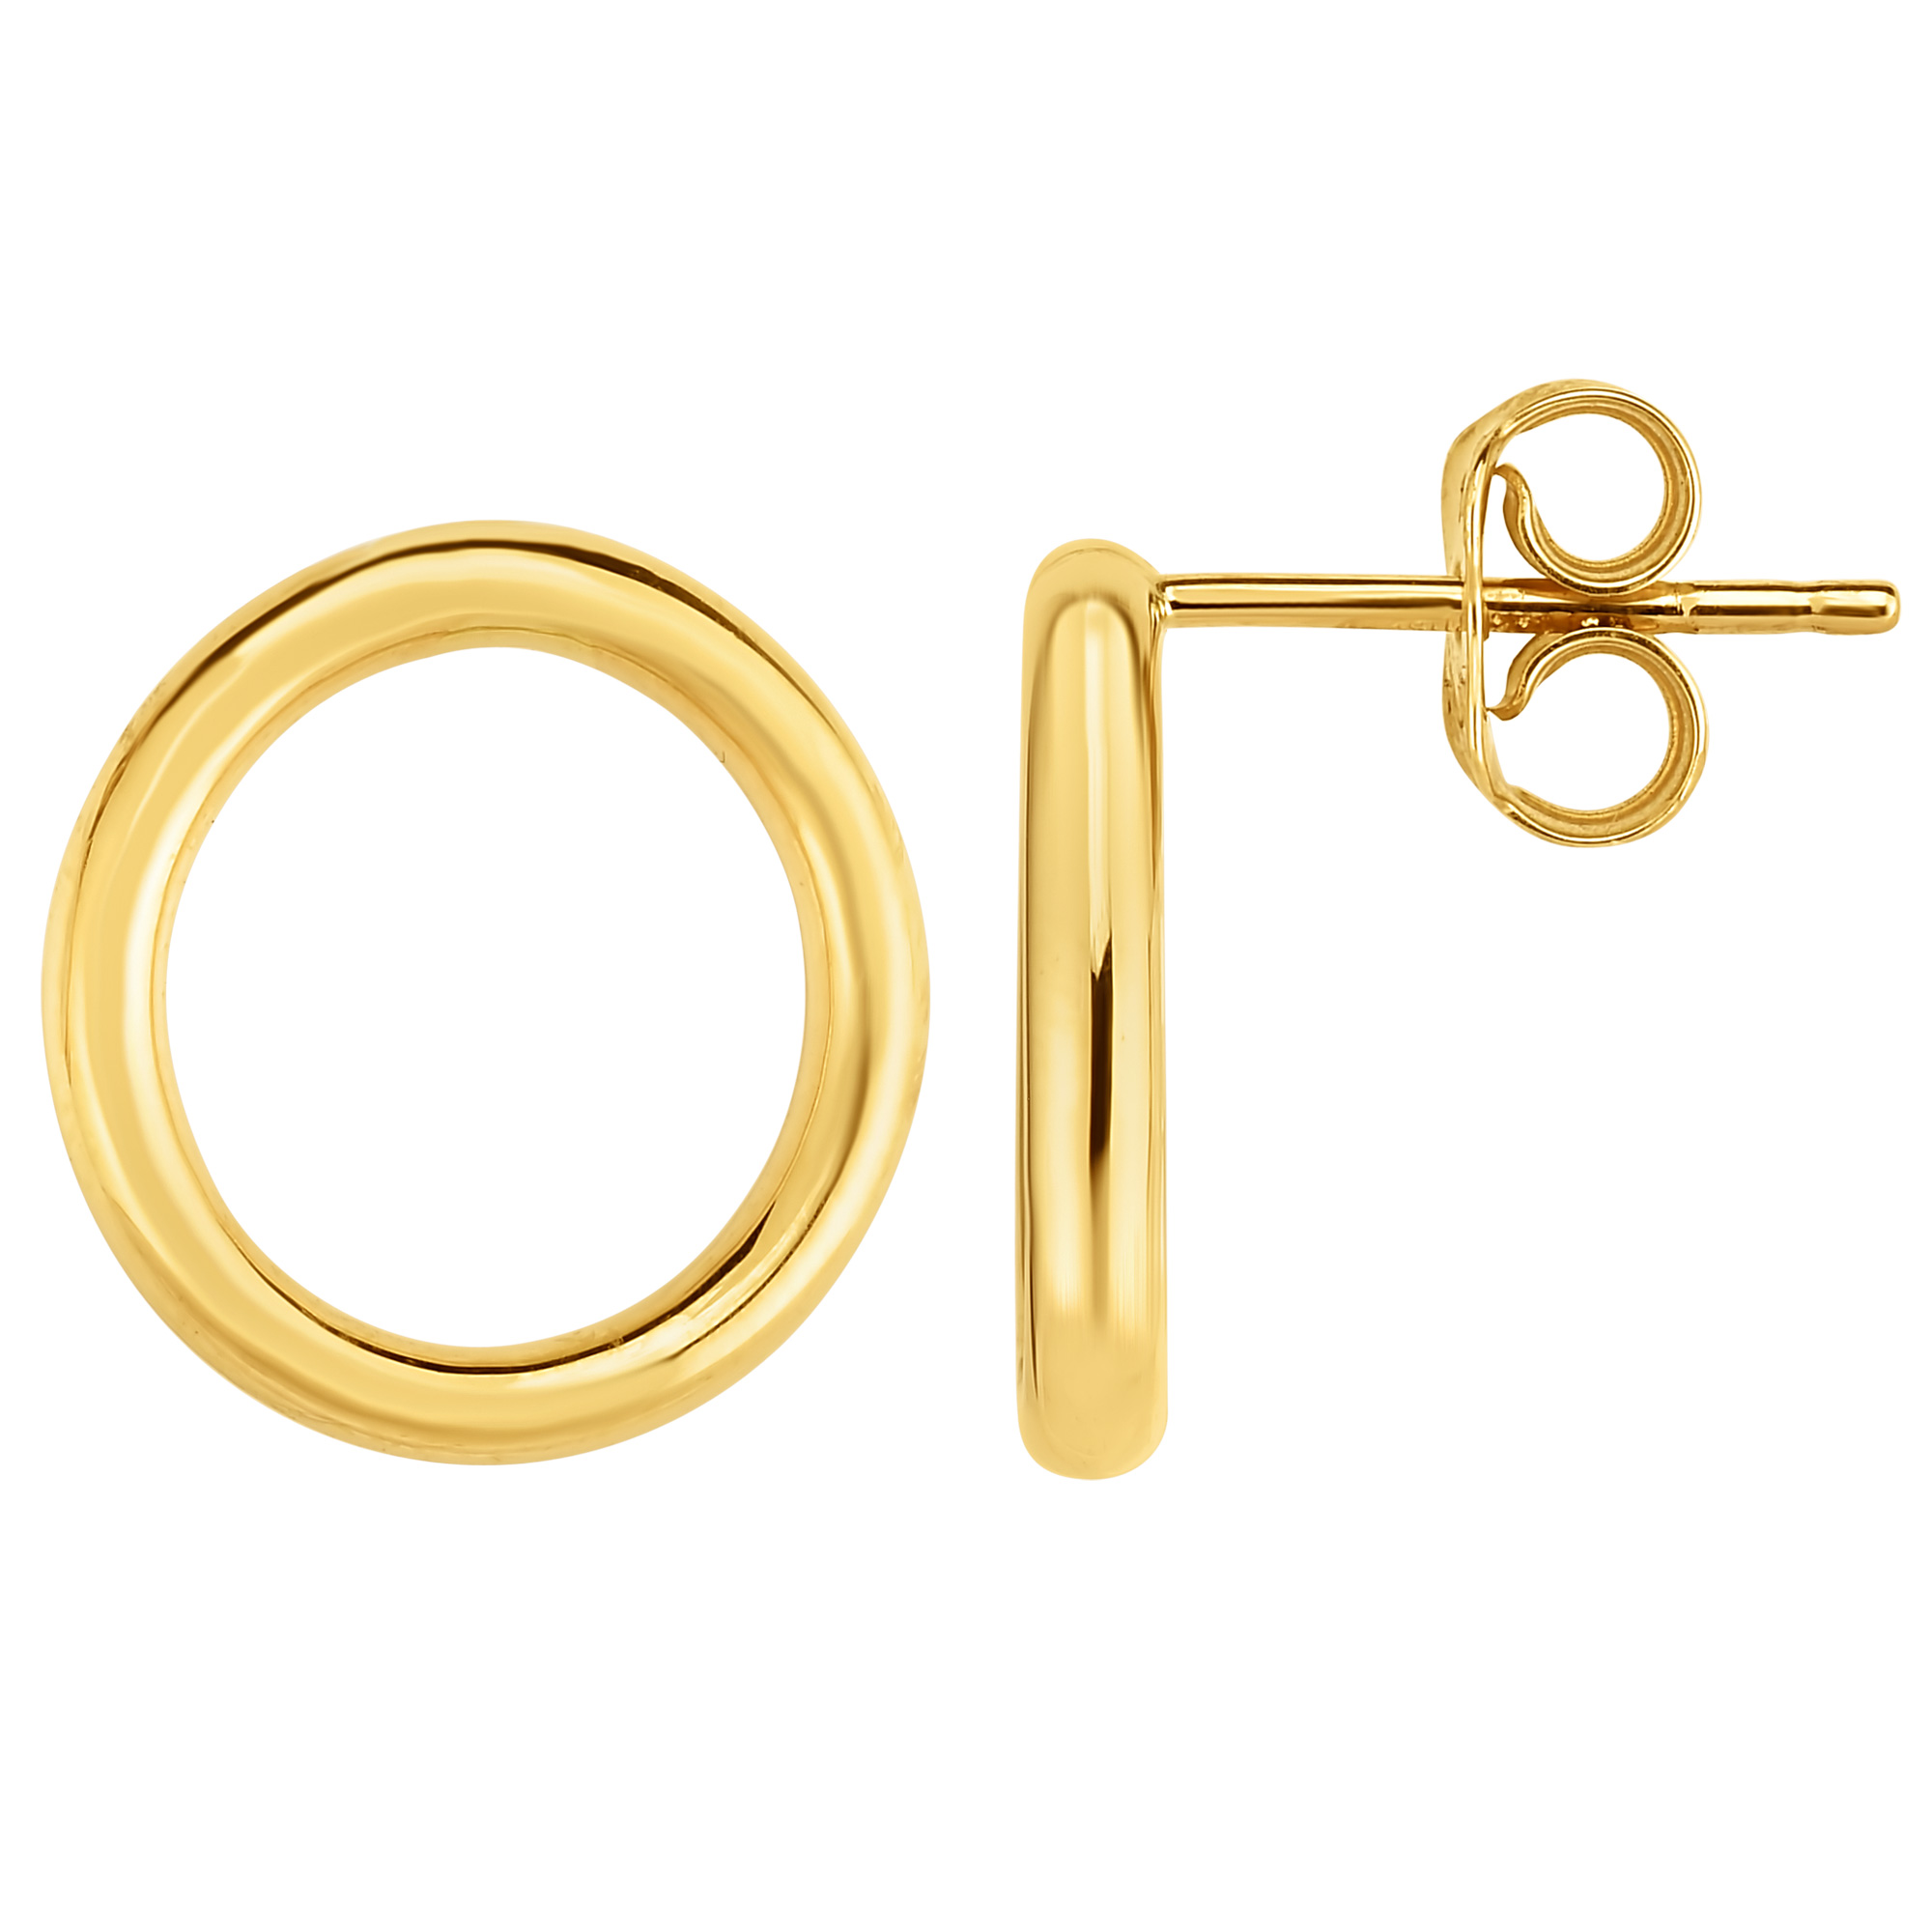 Jewelry Affairs 14k Gold Yellow Open Circle O Style Stud Earrings